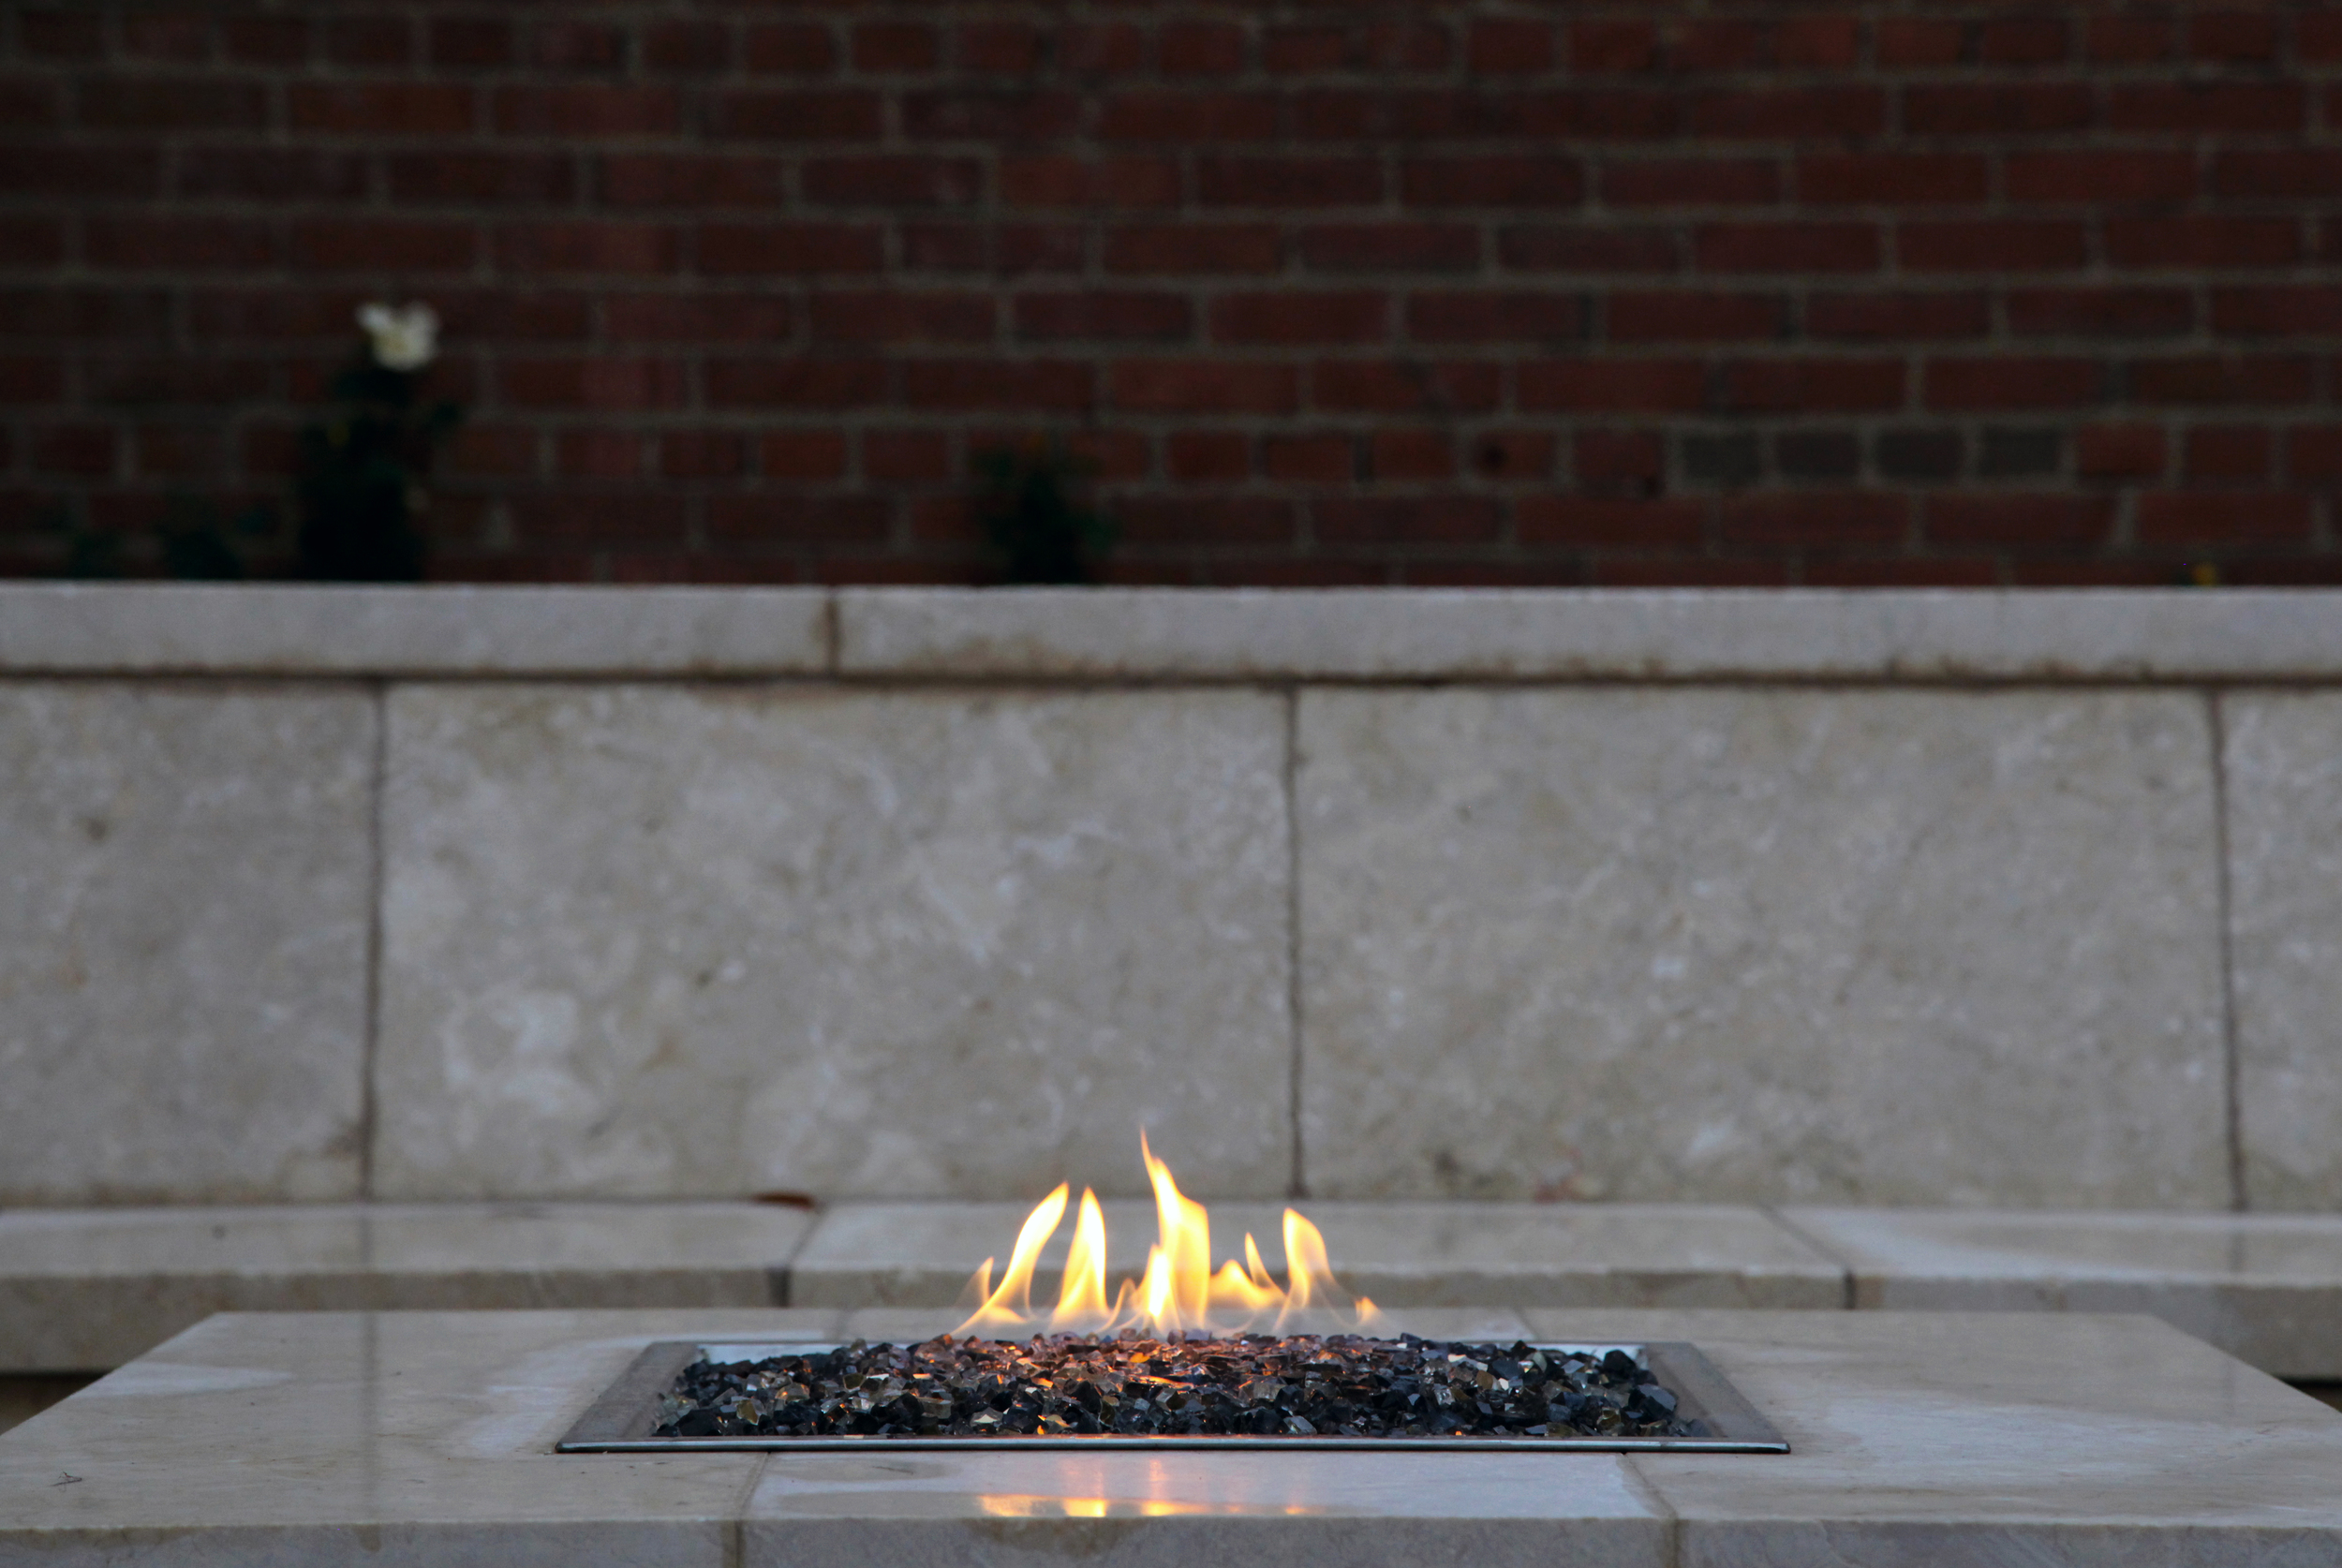 Project Location: Washington, DC (Georgetown)  Completion: Summer 2015  General Contractor: OldeTowne Historic Landscape  Primary Material Palette: Crema Eda marble, brick, cedar, copper  Photos By: Moody Landscape Architecture